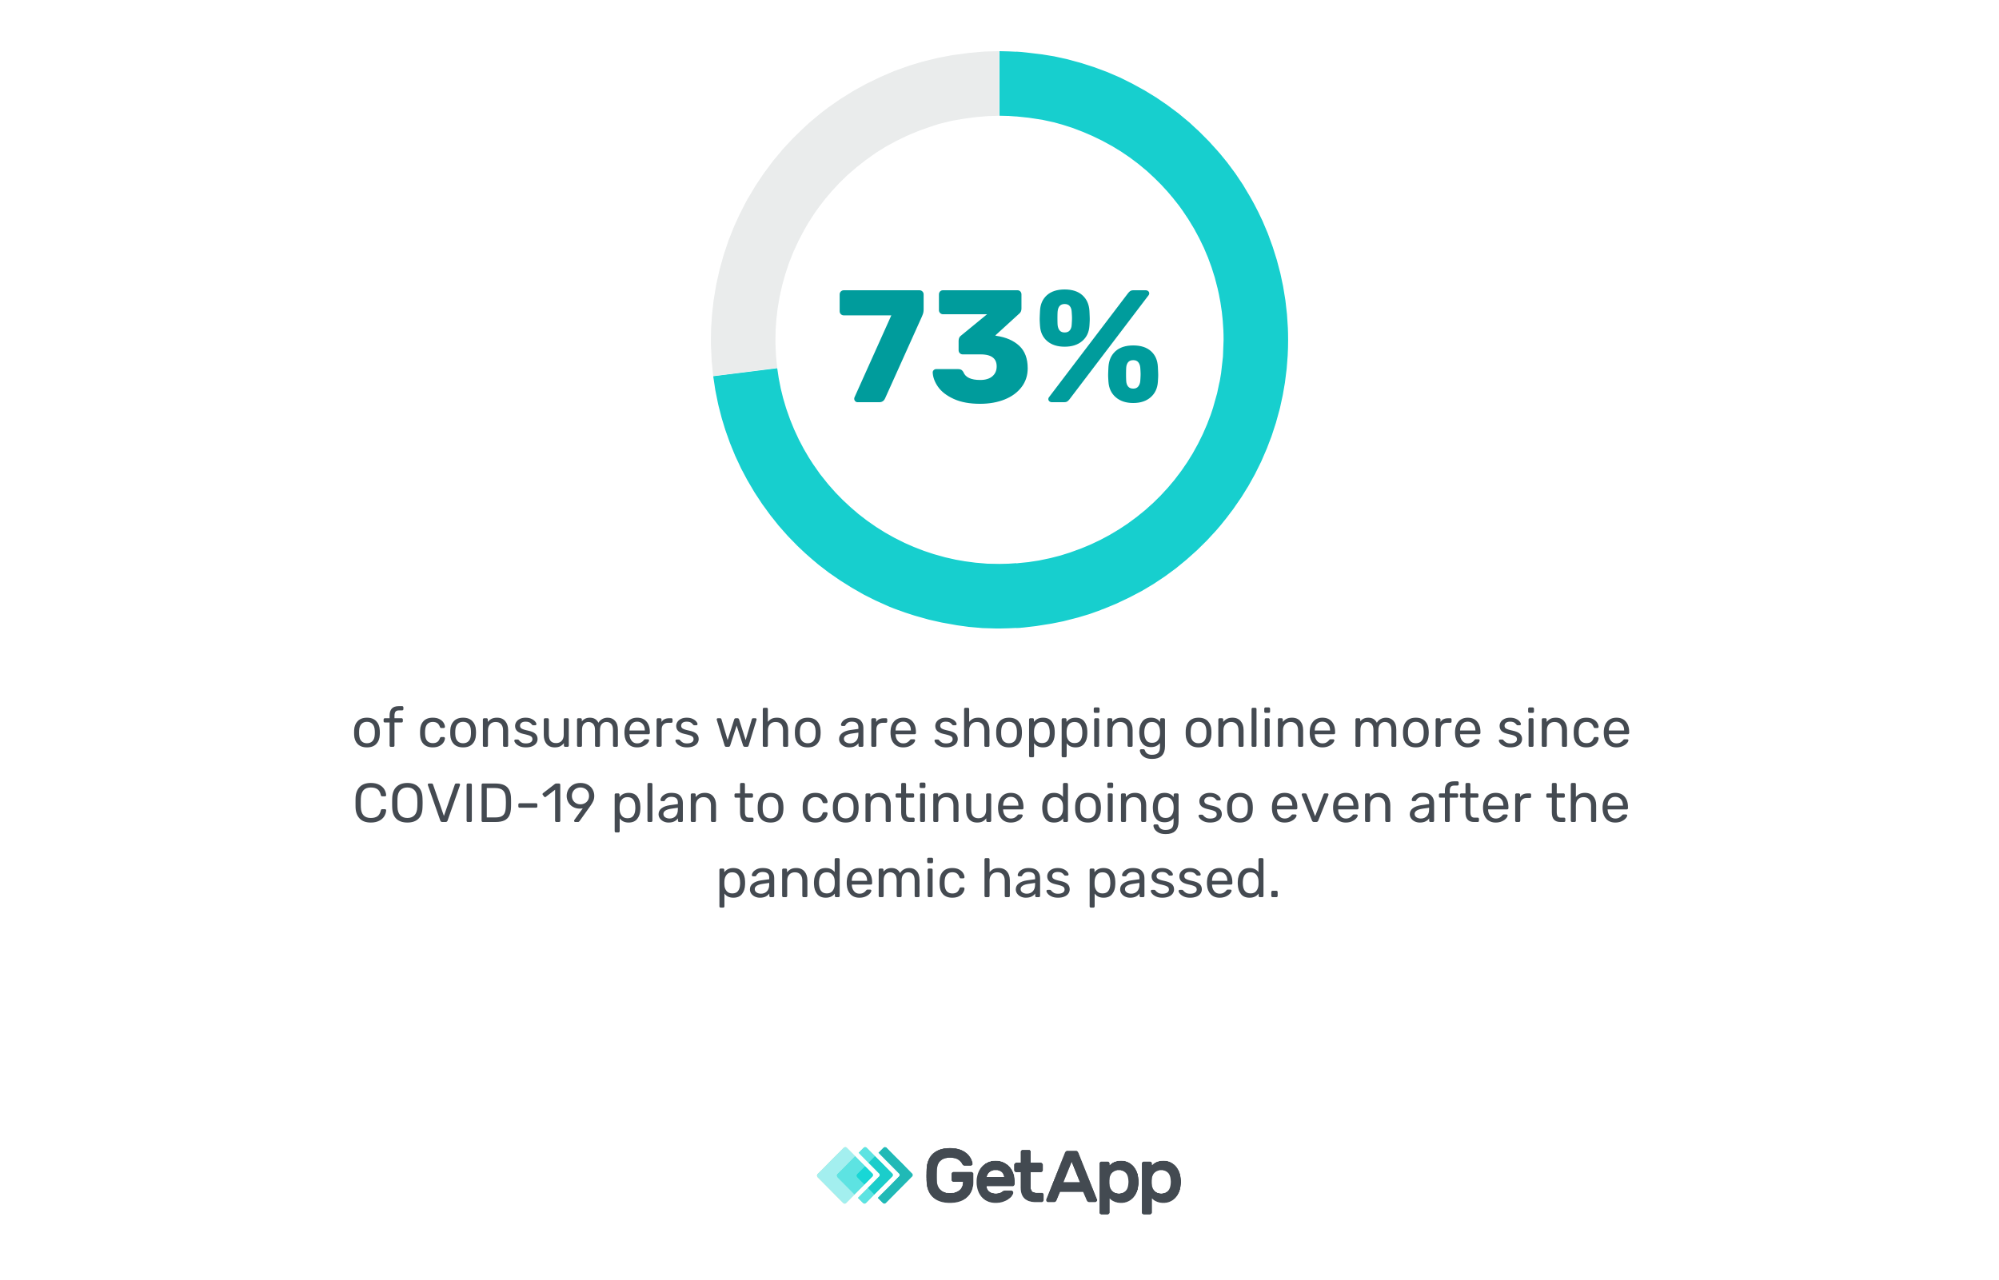 73 percent of consumers shopping online more during the pandemic plan to continue doing so after it ends